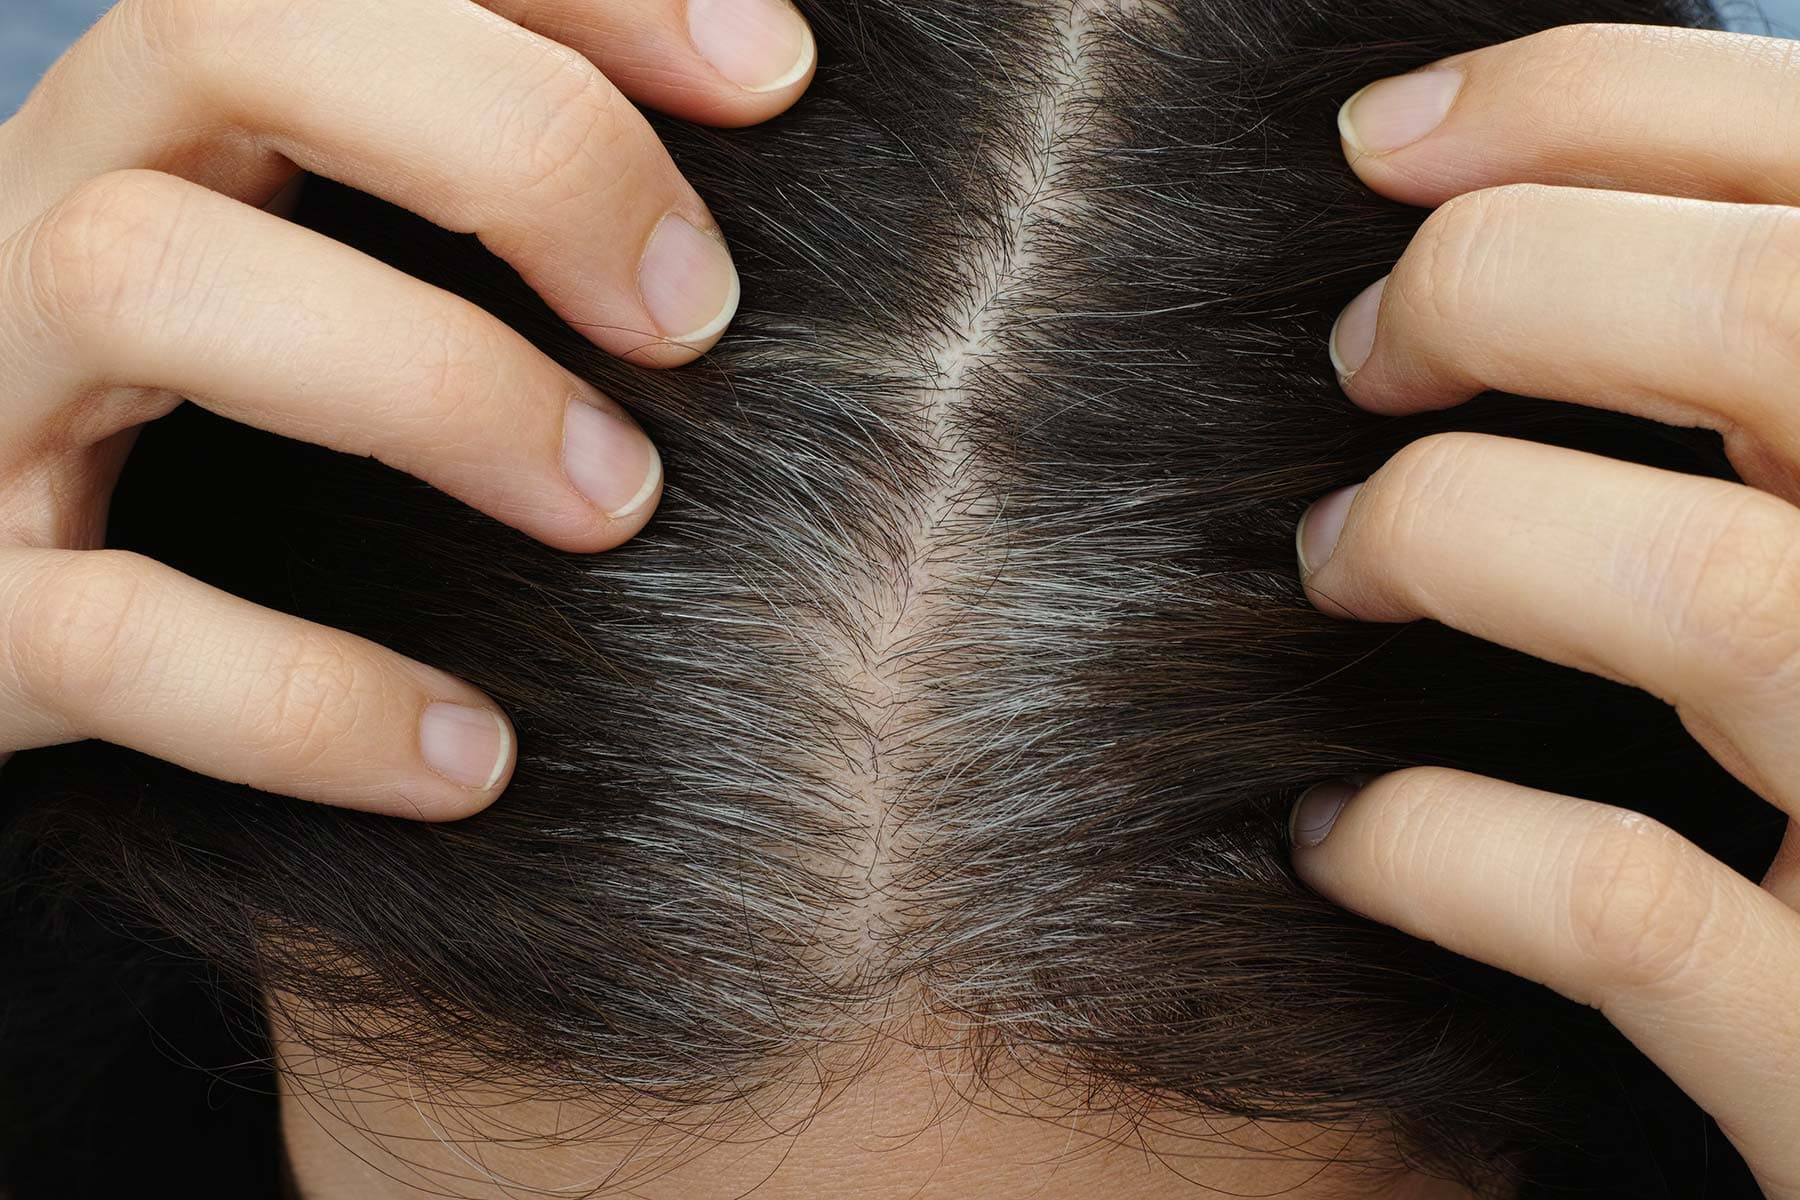 www.webmd.com: When Will You Go Gray? Your Race Matters